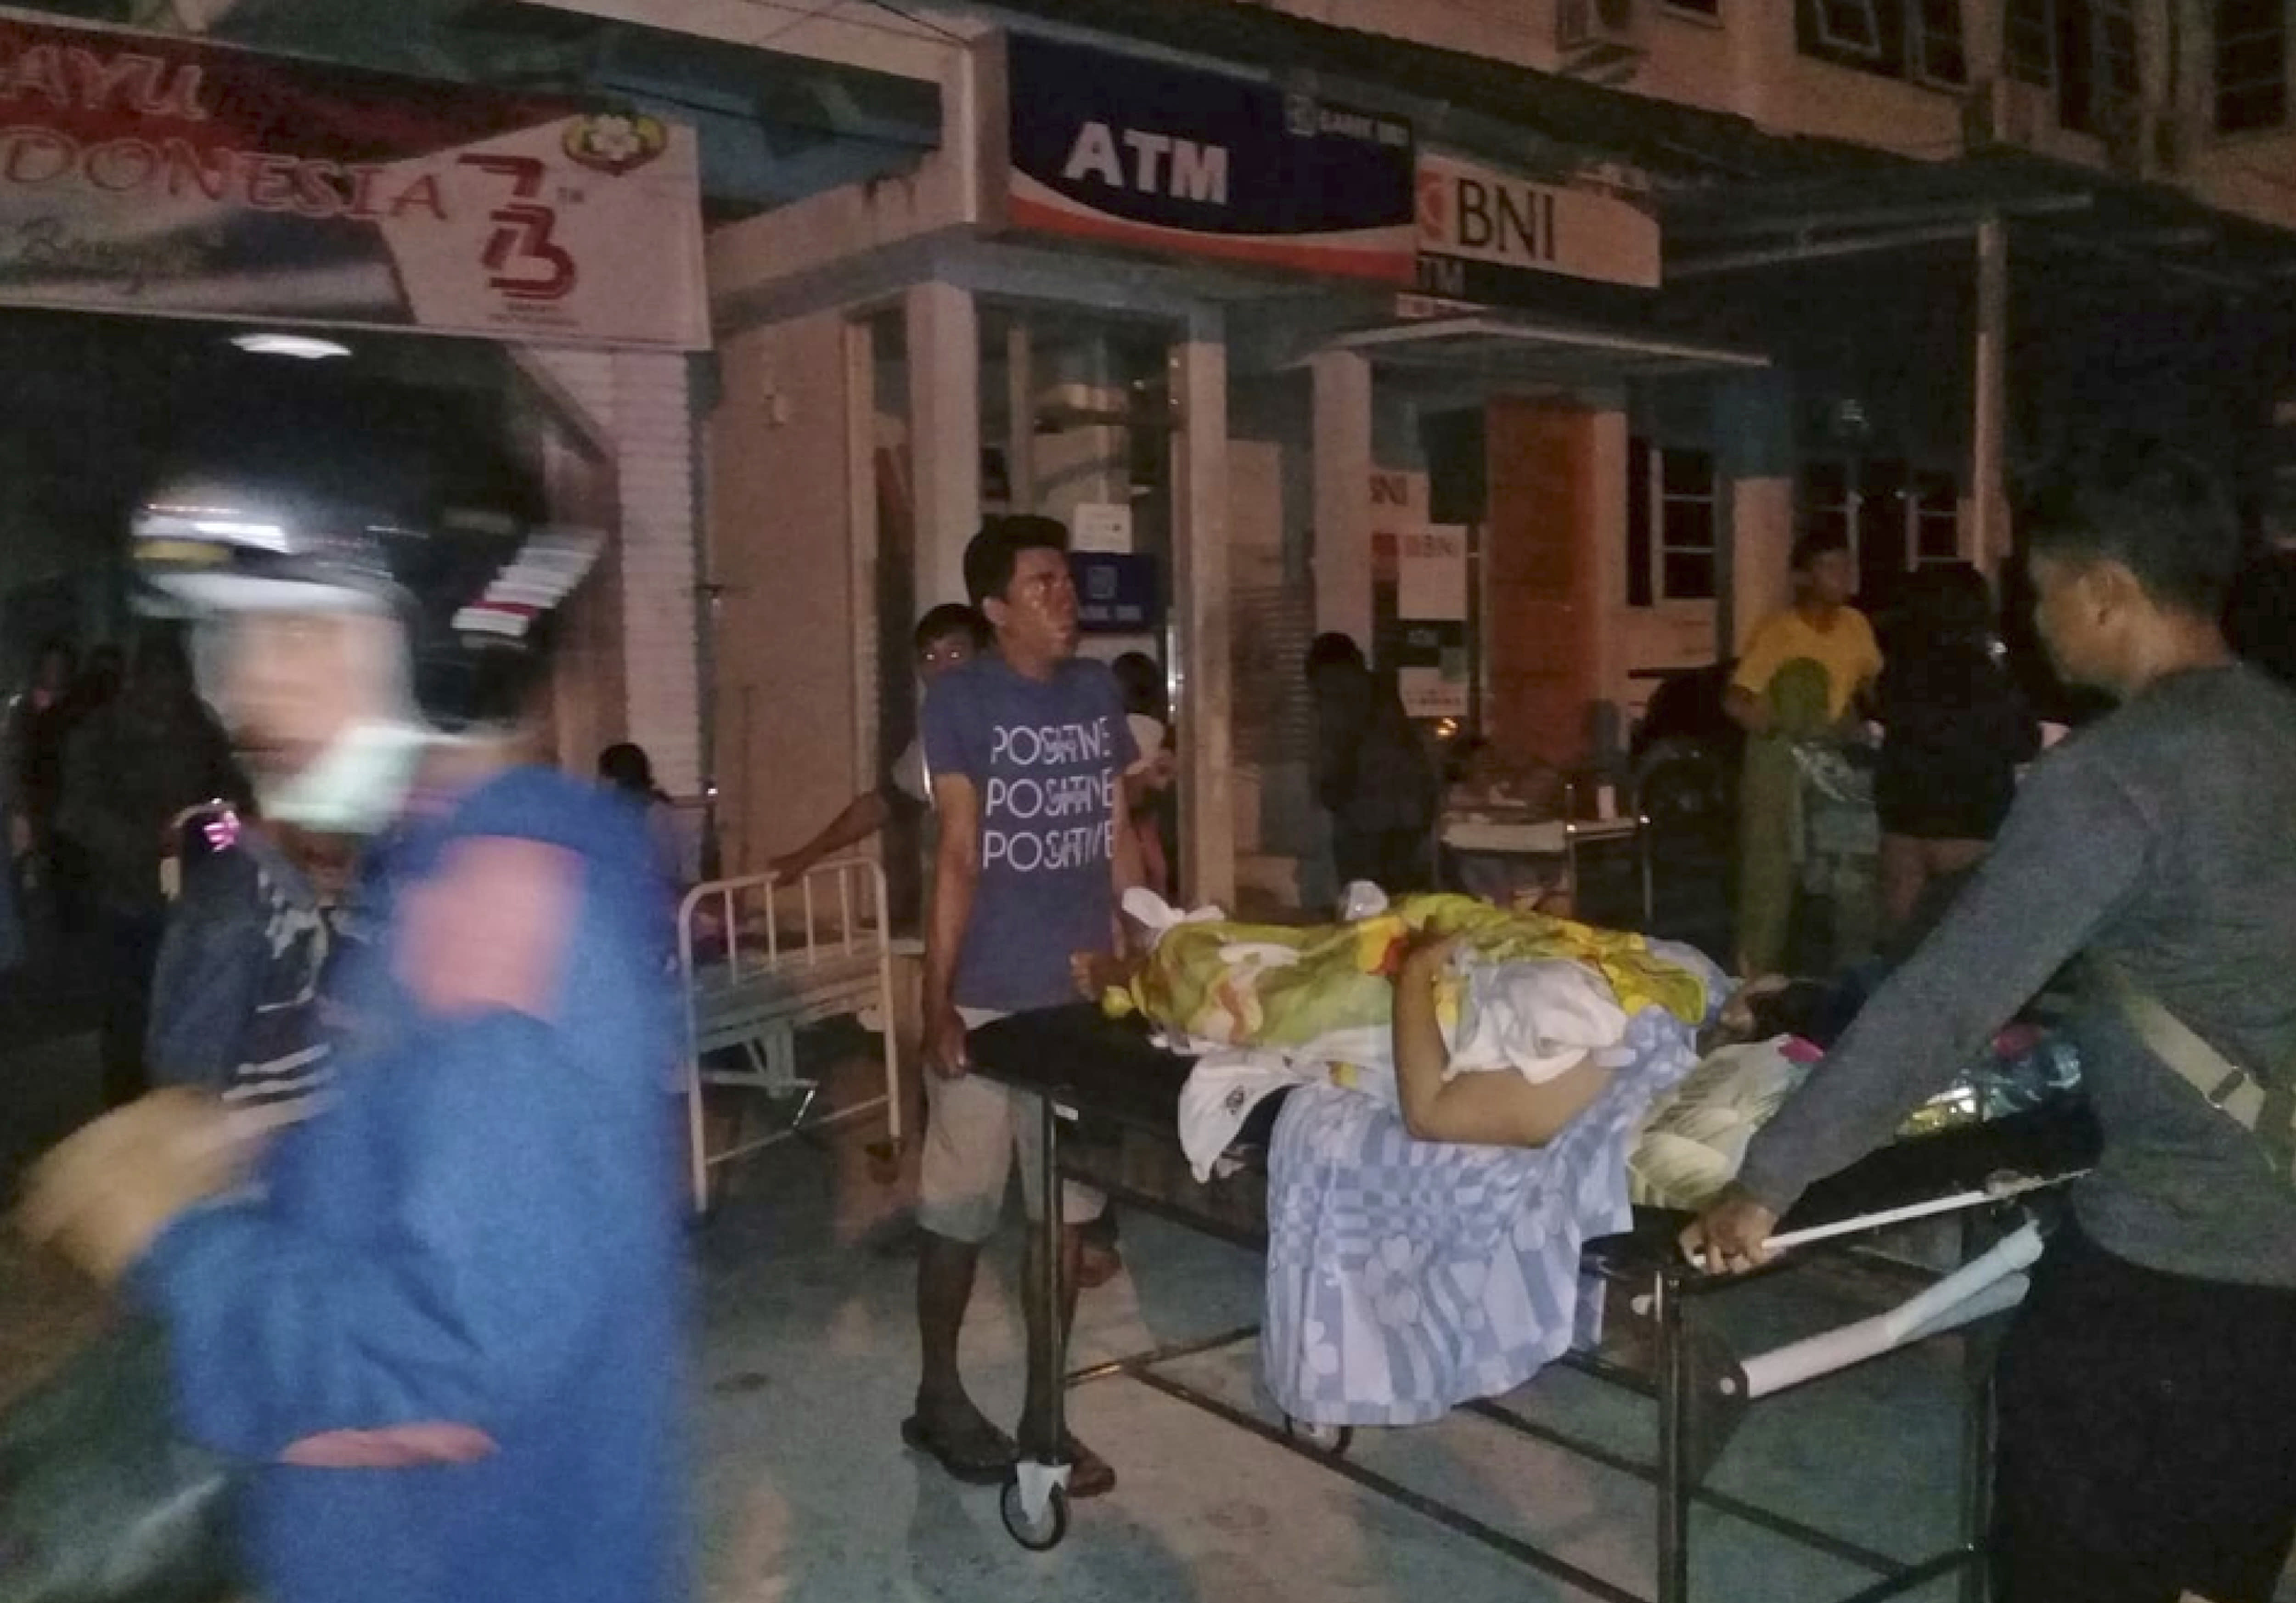 A patient is evacuated from a hospital following a strong earthquake in Poso, central Sulawesi, Indonesia, Friday, Sept. 28, 2018. Powerful earthquakes jolted the Indonesian island of Sulawesi on Friday, damaging houses and briefly triggered a tsunami warning. (AP Photo/Yoanes Litha)